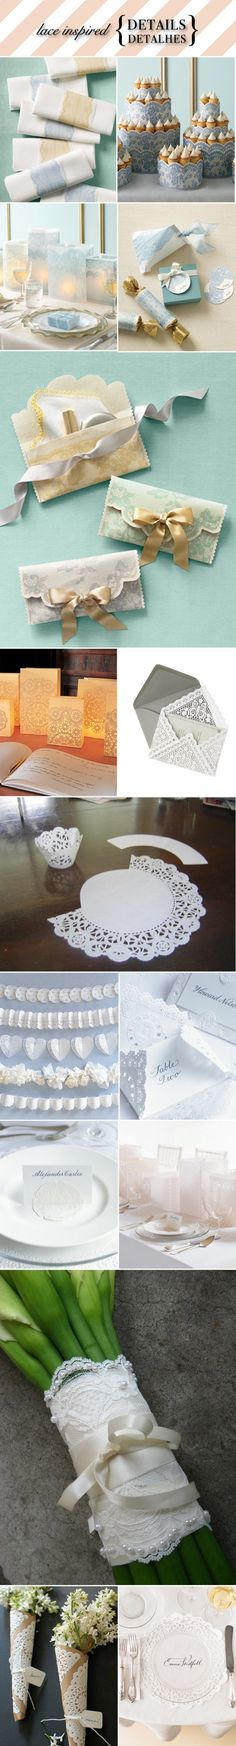 Using doily at weddings